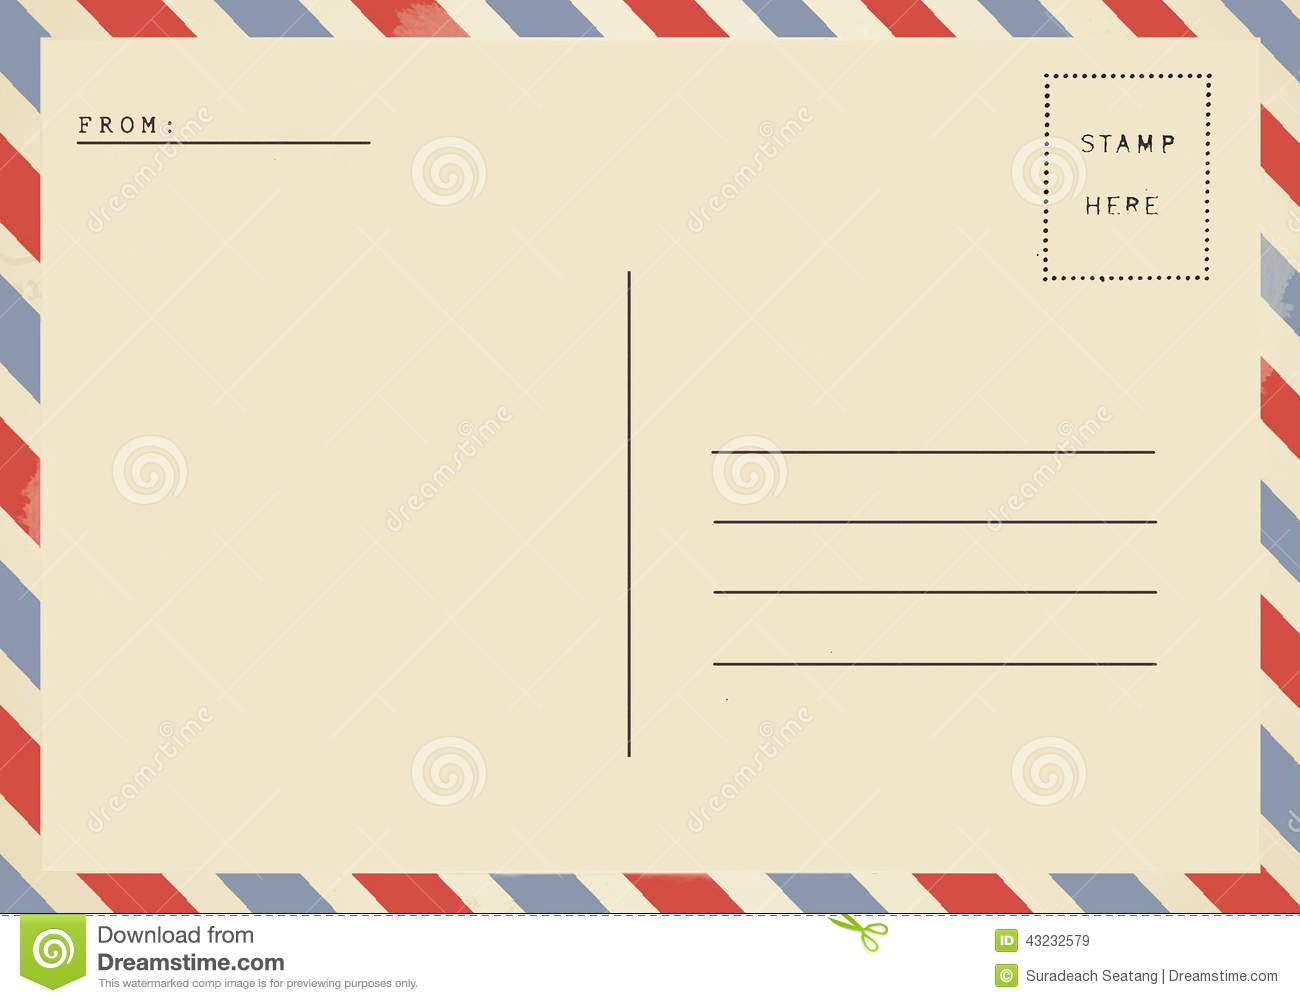 Business Card Template free business card template word : Back Of Airmail Blank Postcard. Stock Photo - Image: 43232579